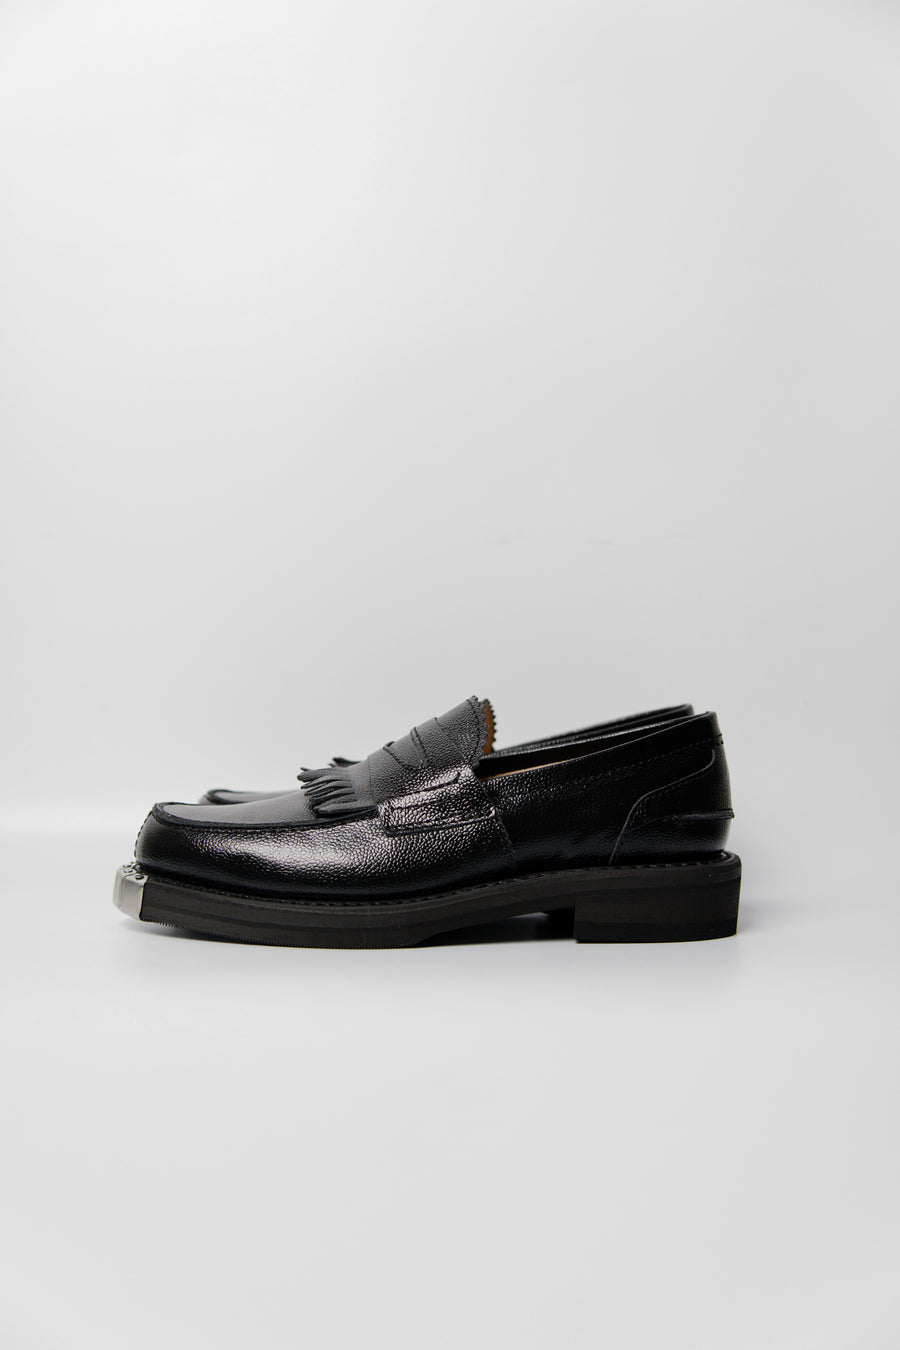 Army Grain Leather Loafer Black